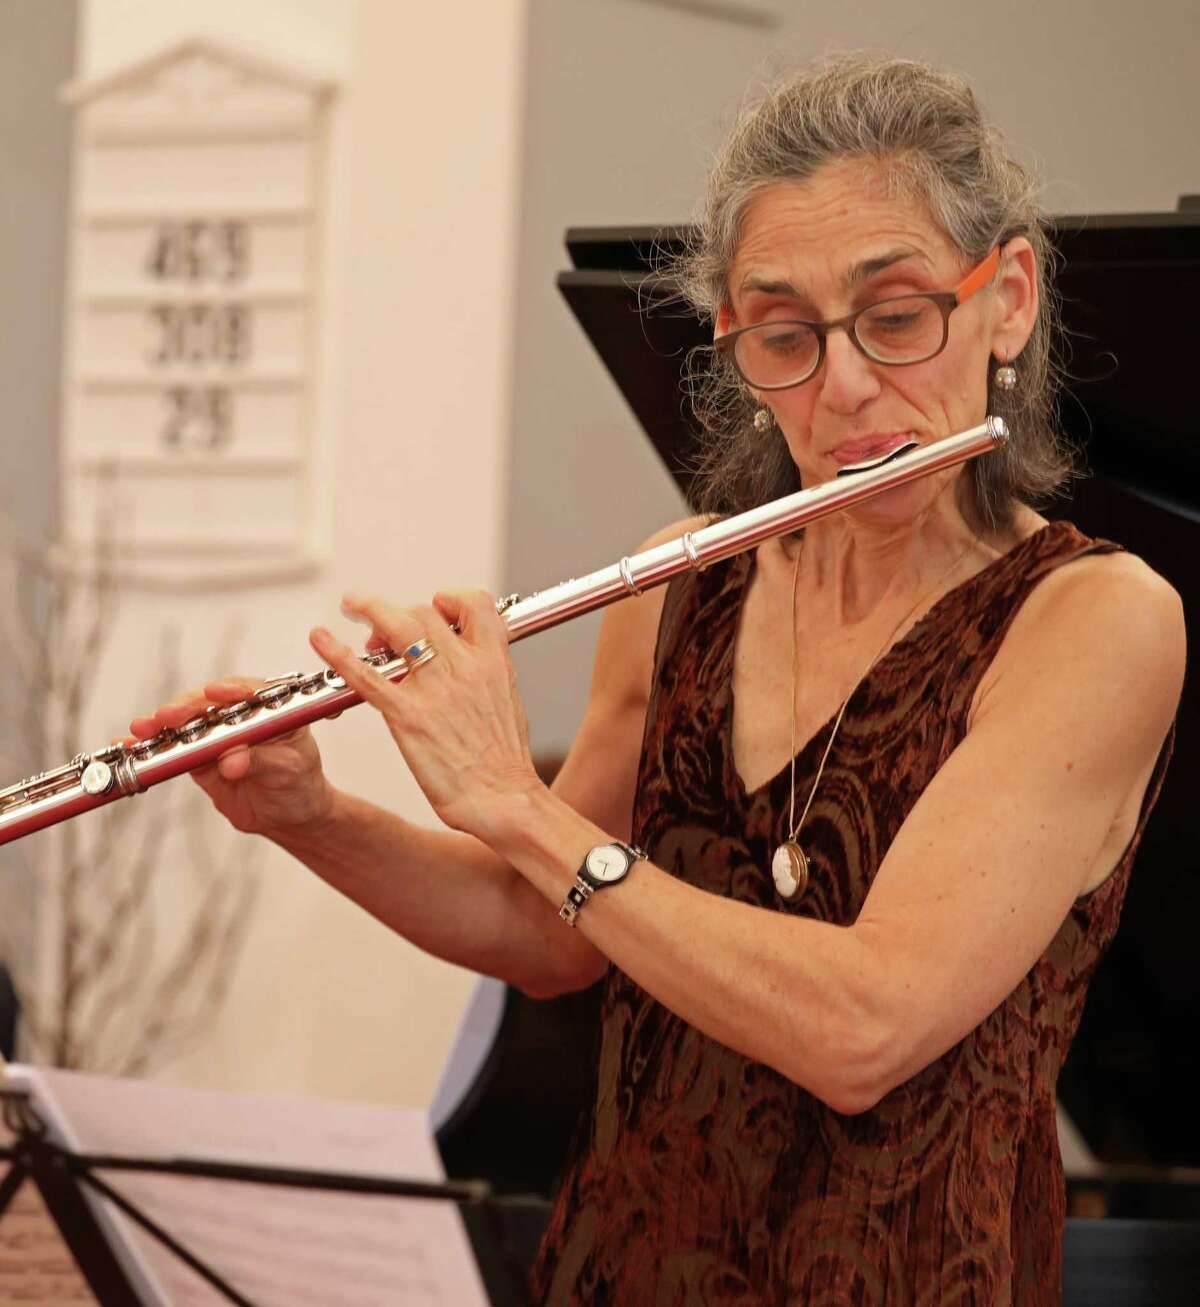 Susan Rotholz on flute, will be part of the Sherman Chamber Ensemble's Best of Baroque concert in Kent.